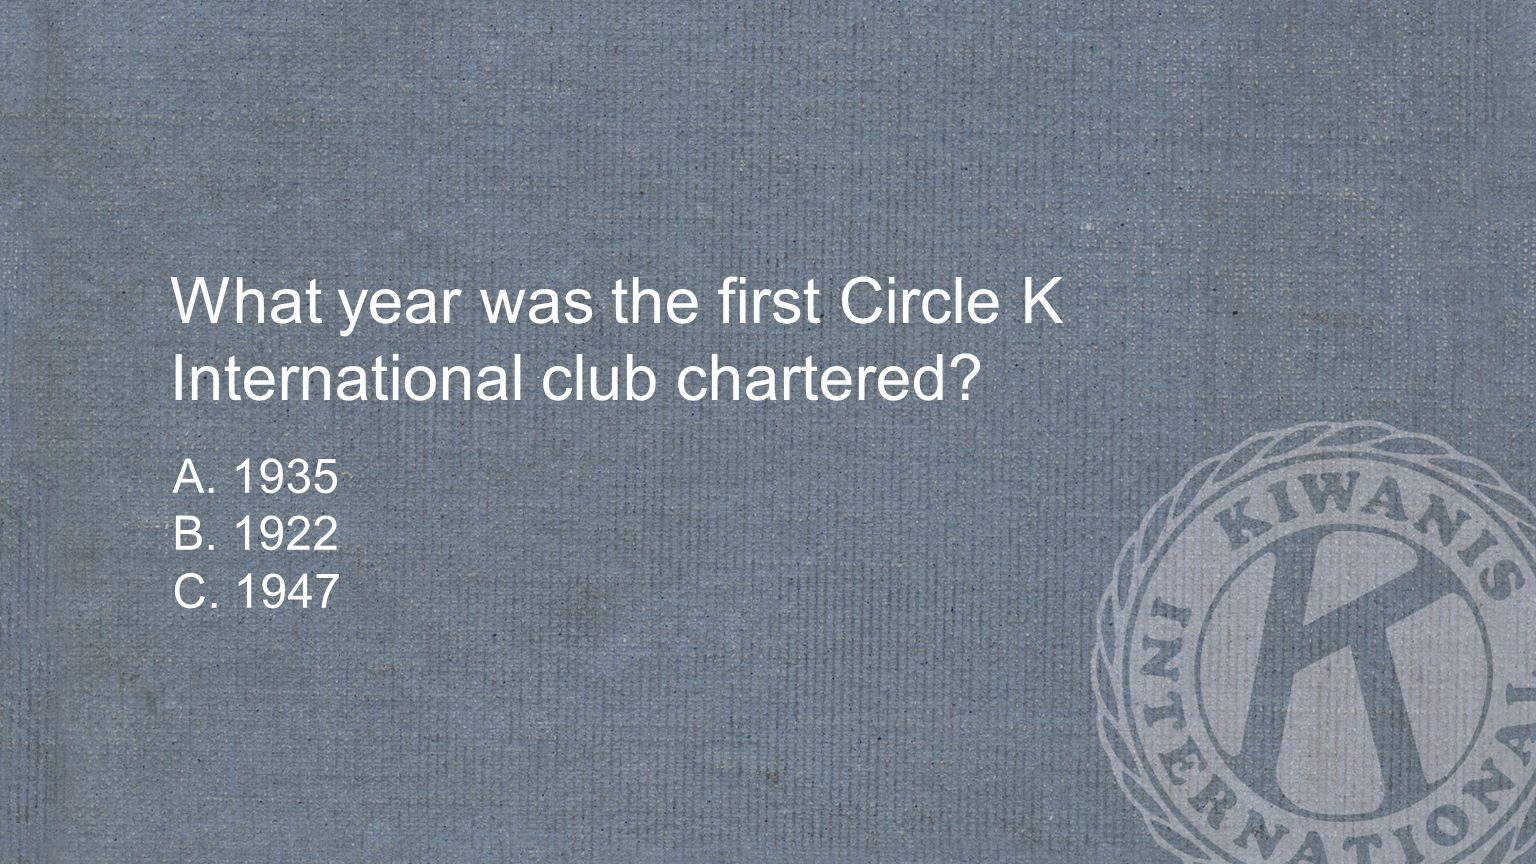 What year was the first Circle K International club chartered